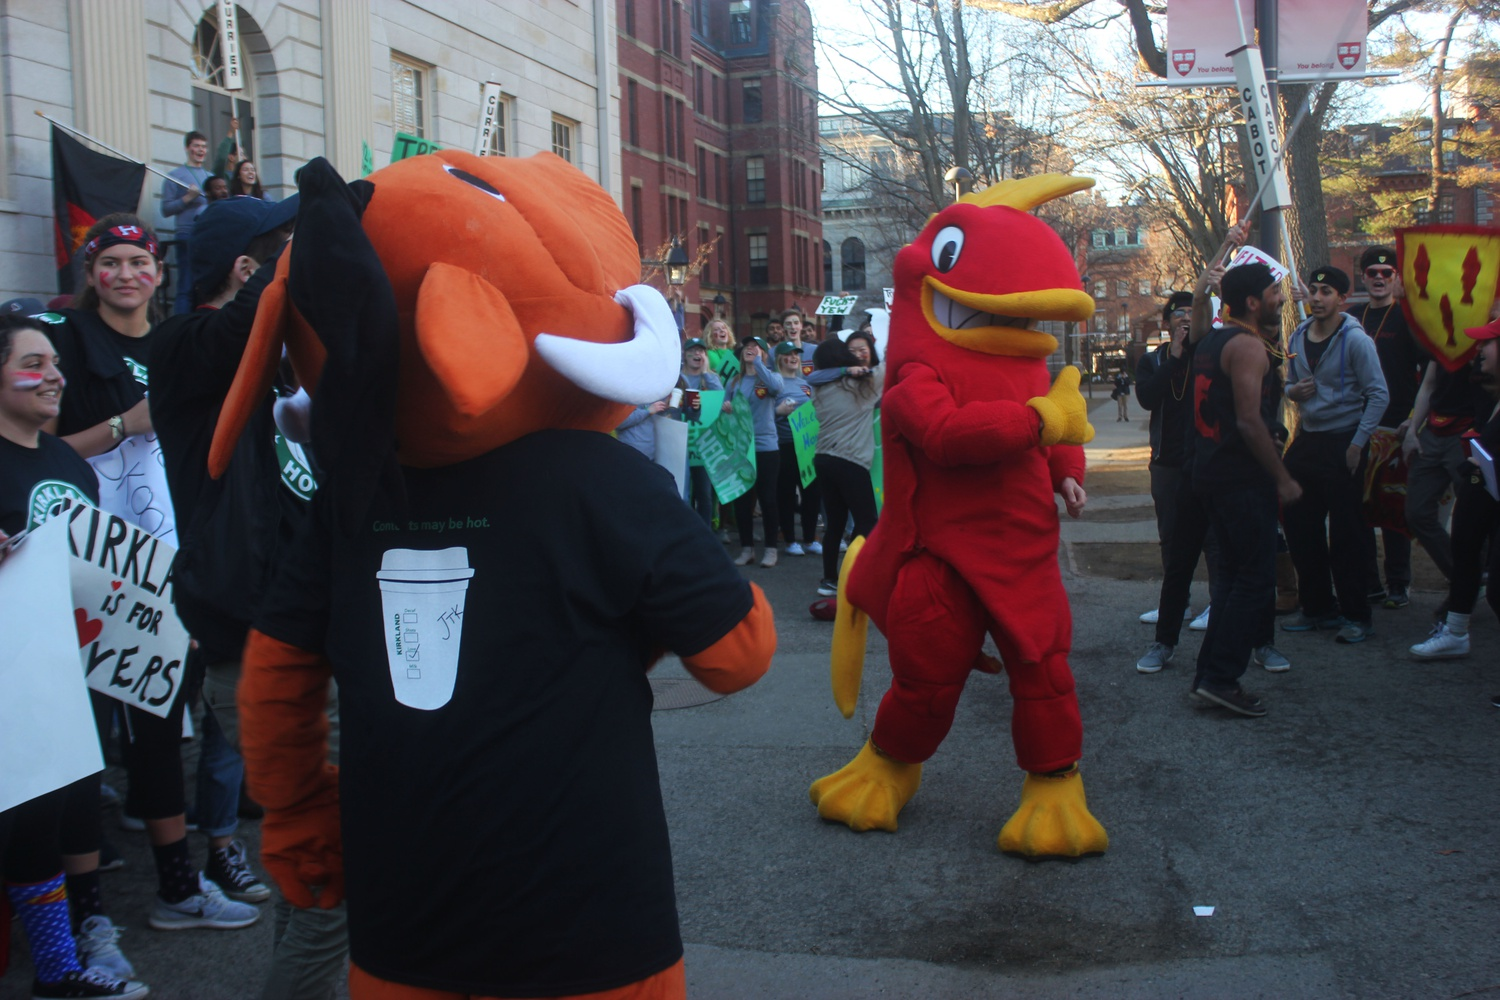 The Cabot and Kirkland mascots prepare for a dance battle in front of the John Harvard statue.